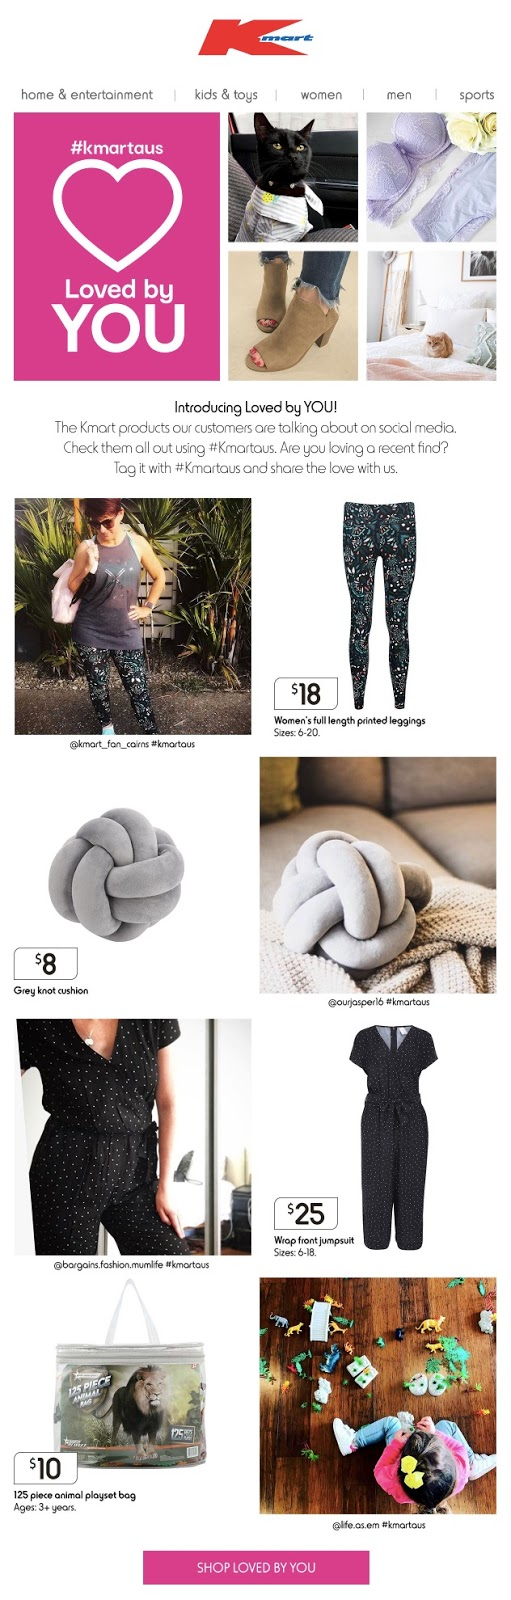 Kmart compares product images to user-generated images.